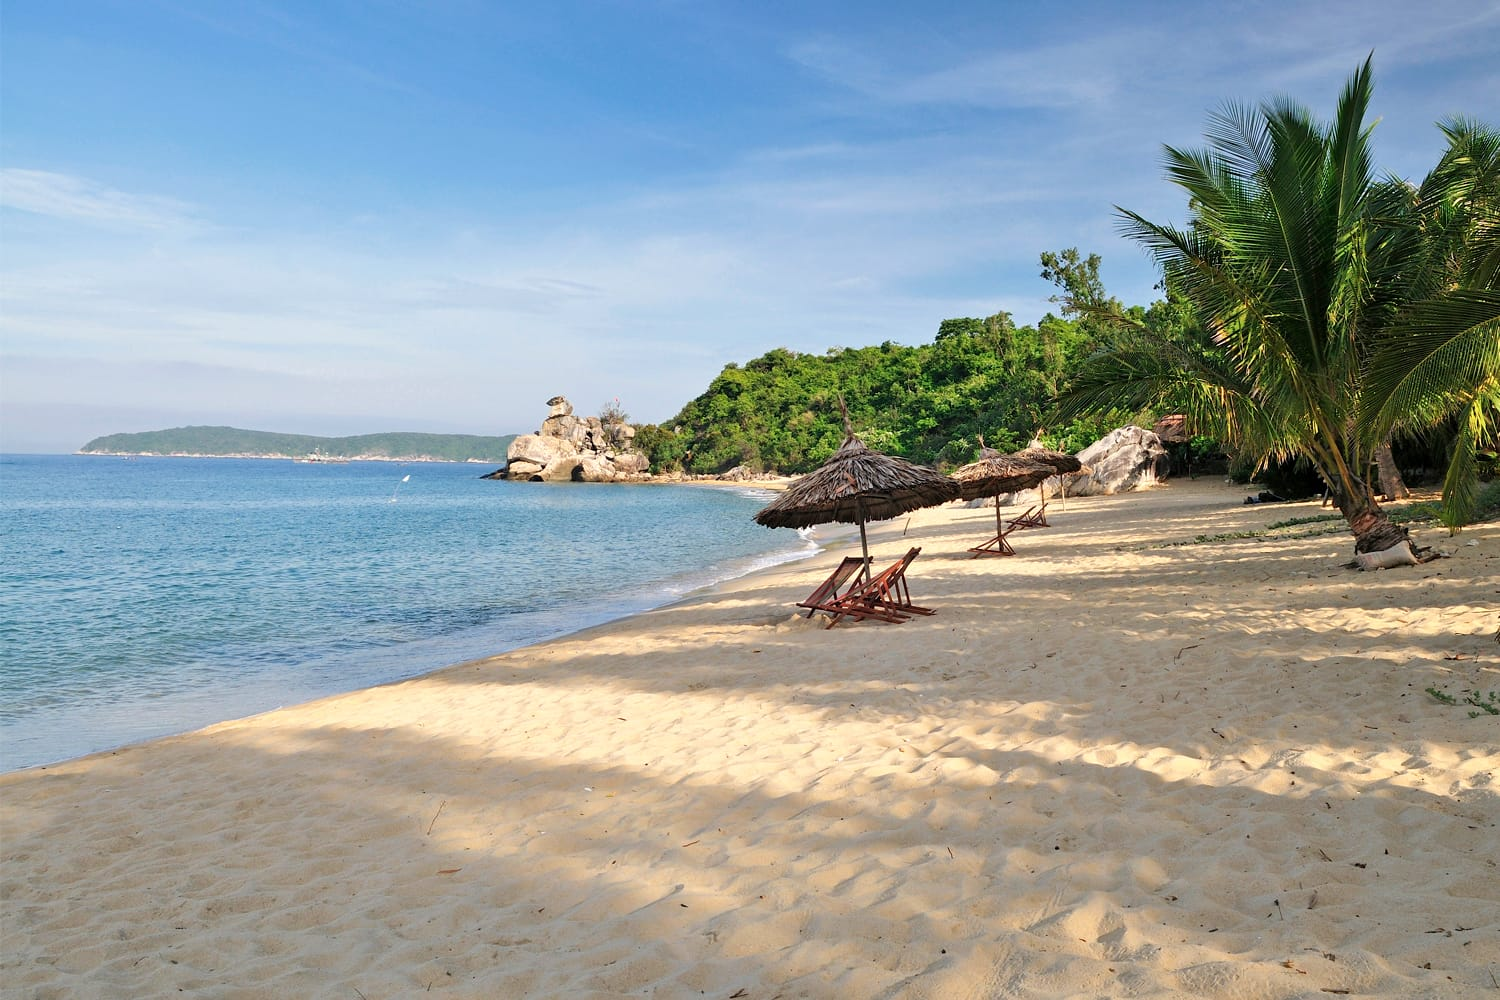 Sandy beach on Cham island, Central Vietnam, near Hoi An ancient town